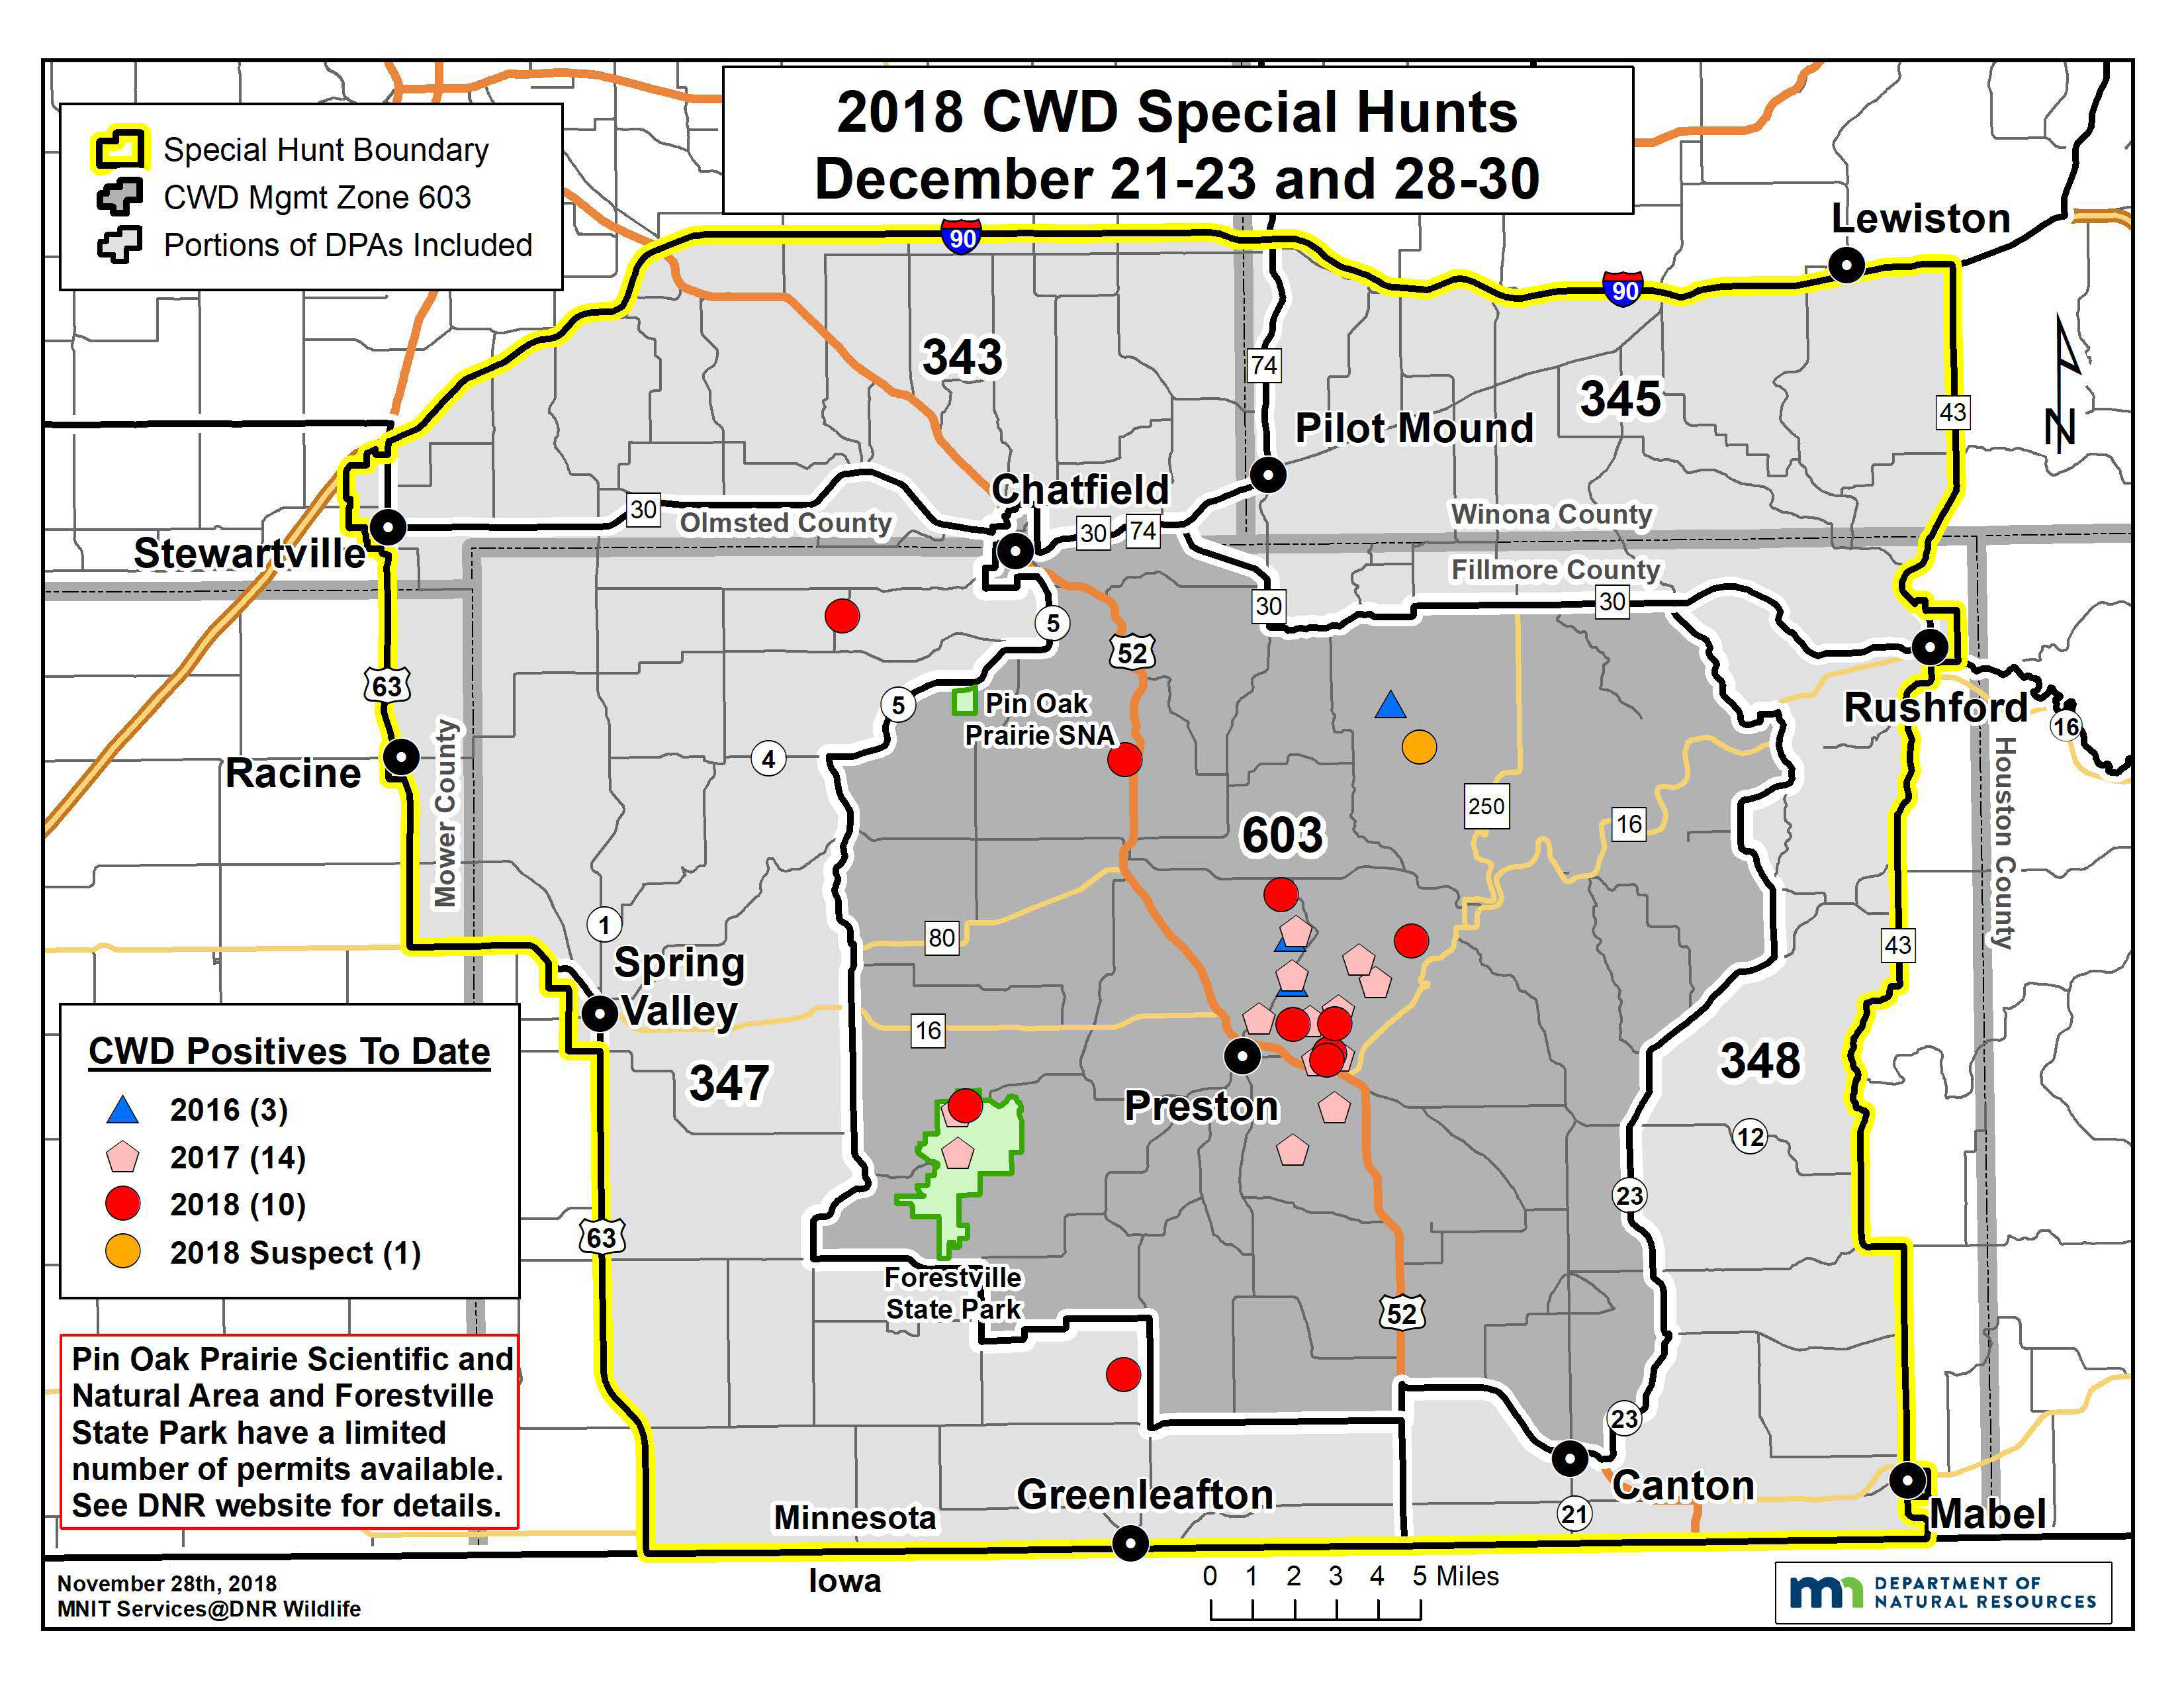 2018 special CWD hunt - Minnesota DNR on map of wisconsin and minnesota, map of southeast fl, map of minnesota small towns, map of southeast cu, map of southeast mt, map of all regions, map of southeast bc, map of twin cities metro, map of iowa area, map of minneapolis suburbs, map of southeast asia, map of minnesota cities and towns, map of northeast iowa, map of south dakota and minnesota, map of northern minnesota cities, map of southeast ct, map of minneapolis/st. paul, map of southeast ak, map of mankato, city of winona mn,